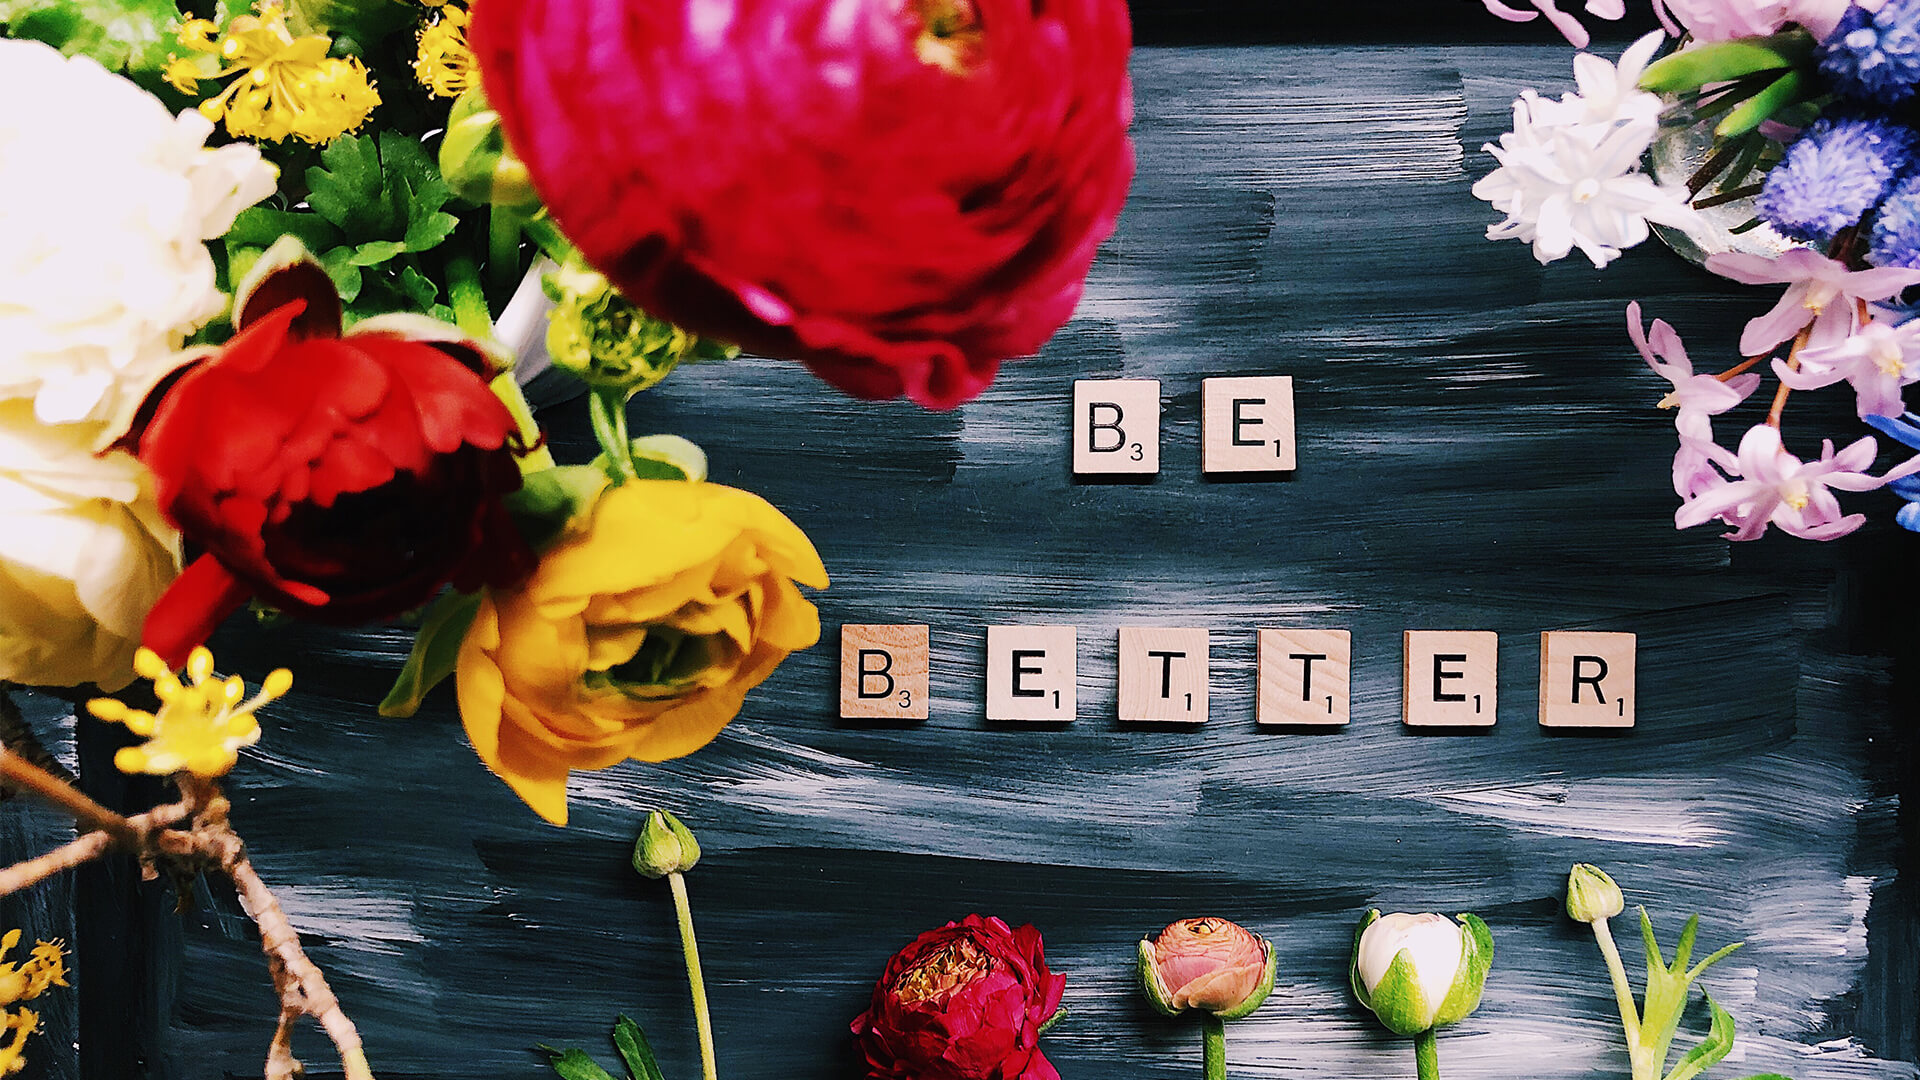 True Nobility: Be Better Than Who You Were Yesterday